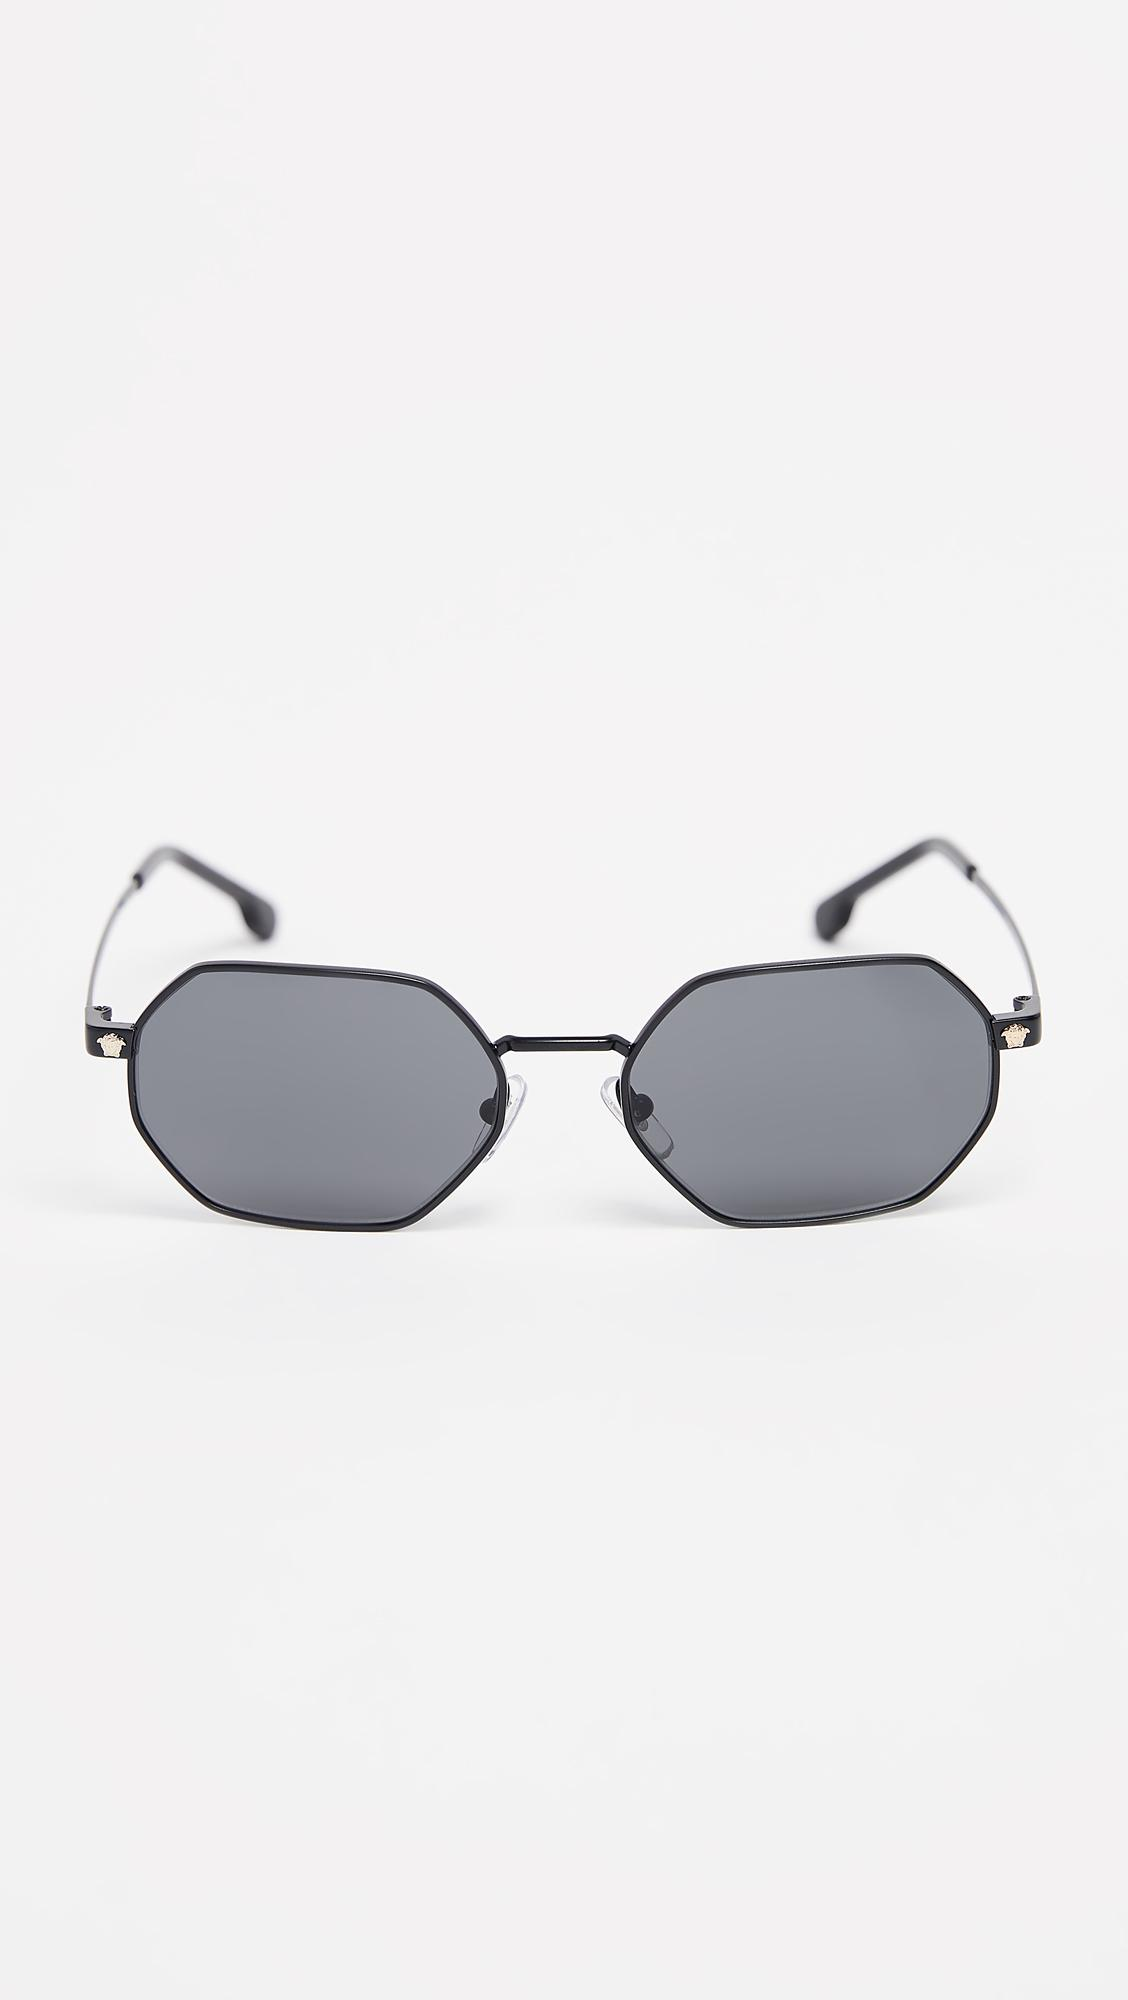 ec31b2c93e3 Versace Vintage Octagon Sunglasses in Gray for Men - Lyst